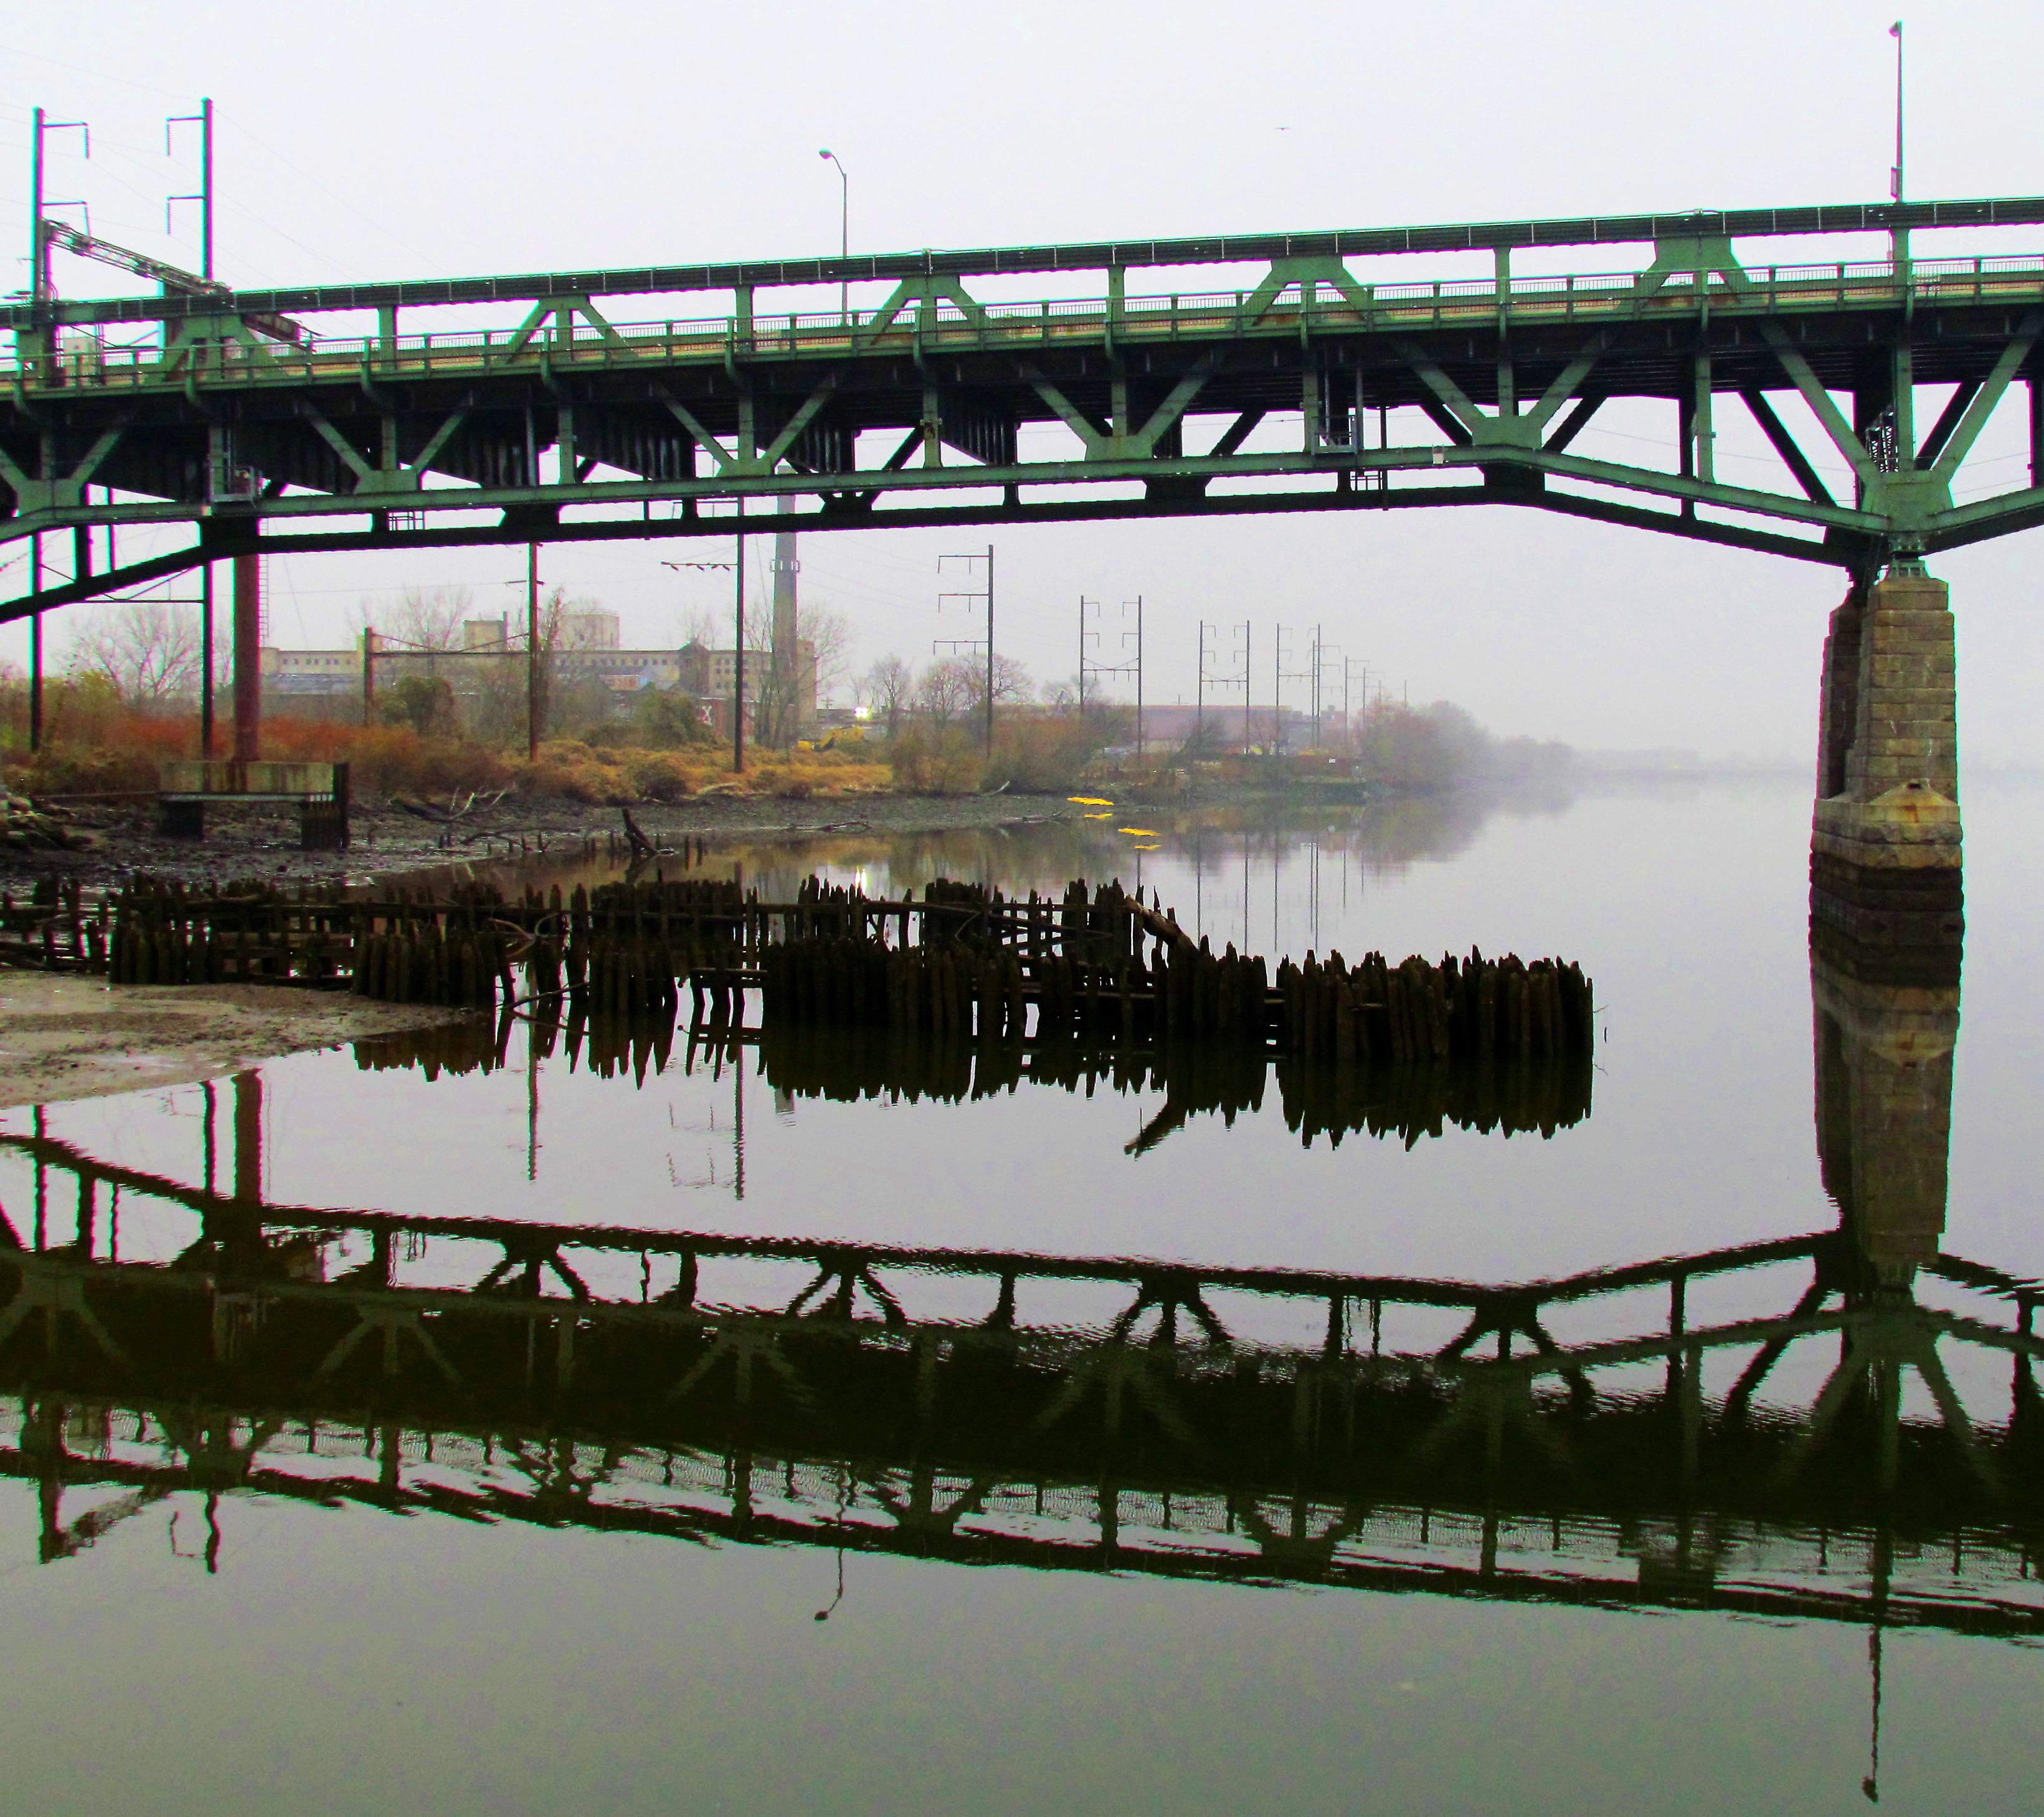 Reflections Of Steel Bridge Span, Pillar, & River Jetty